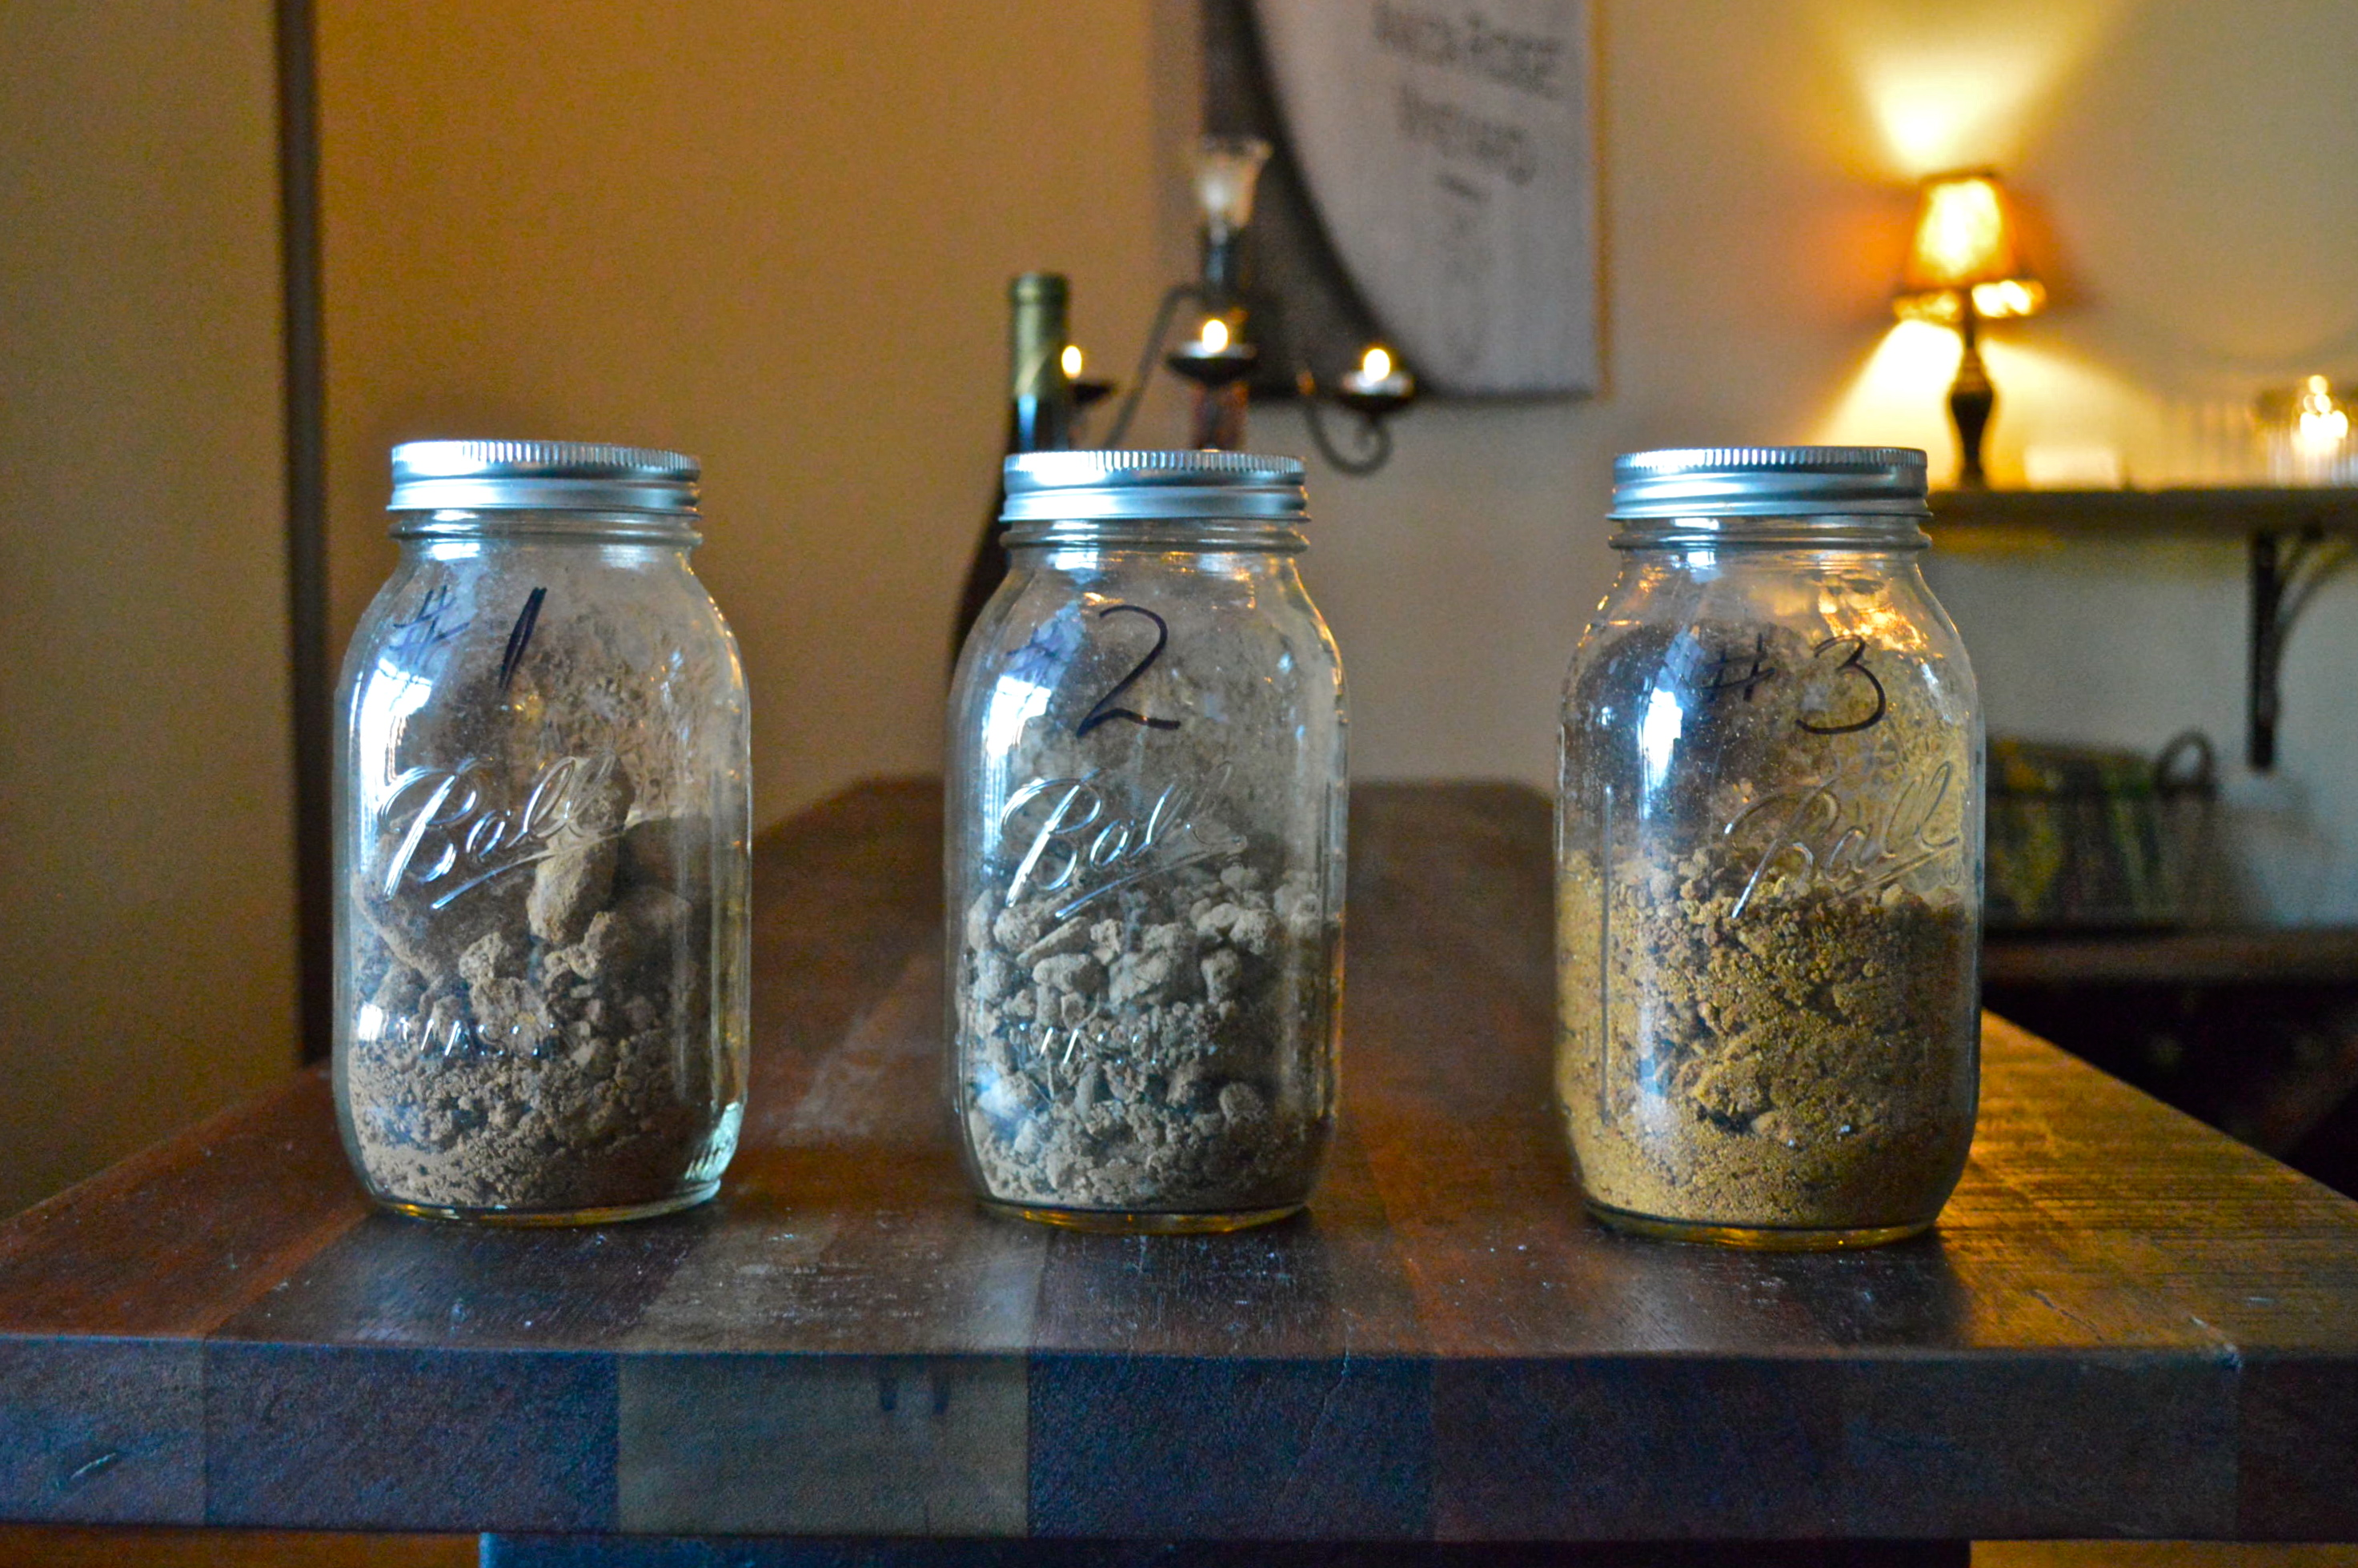 layers of soil in a jar - photo #24